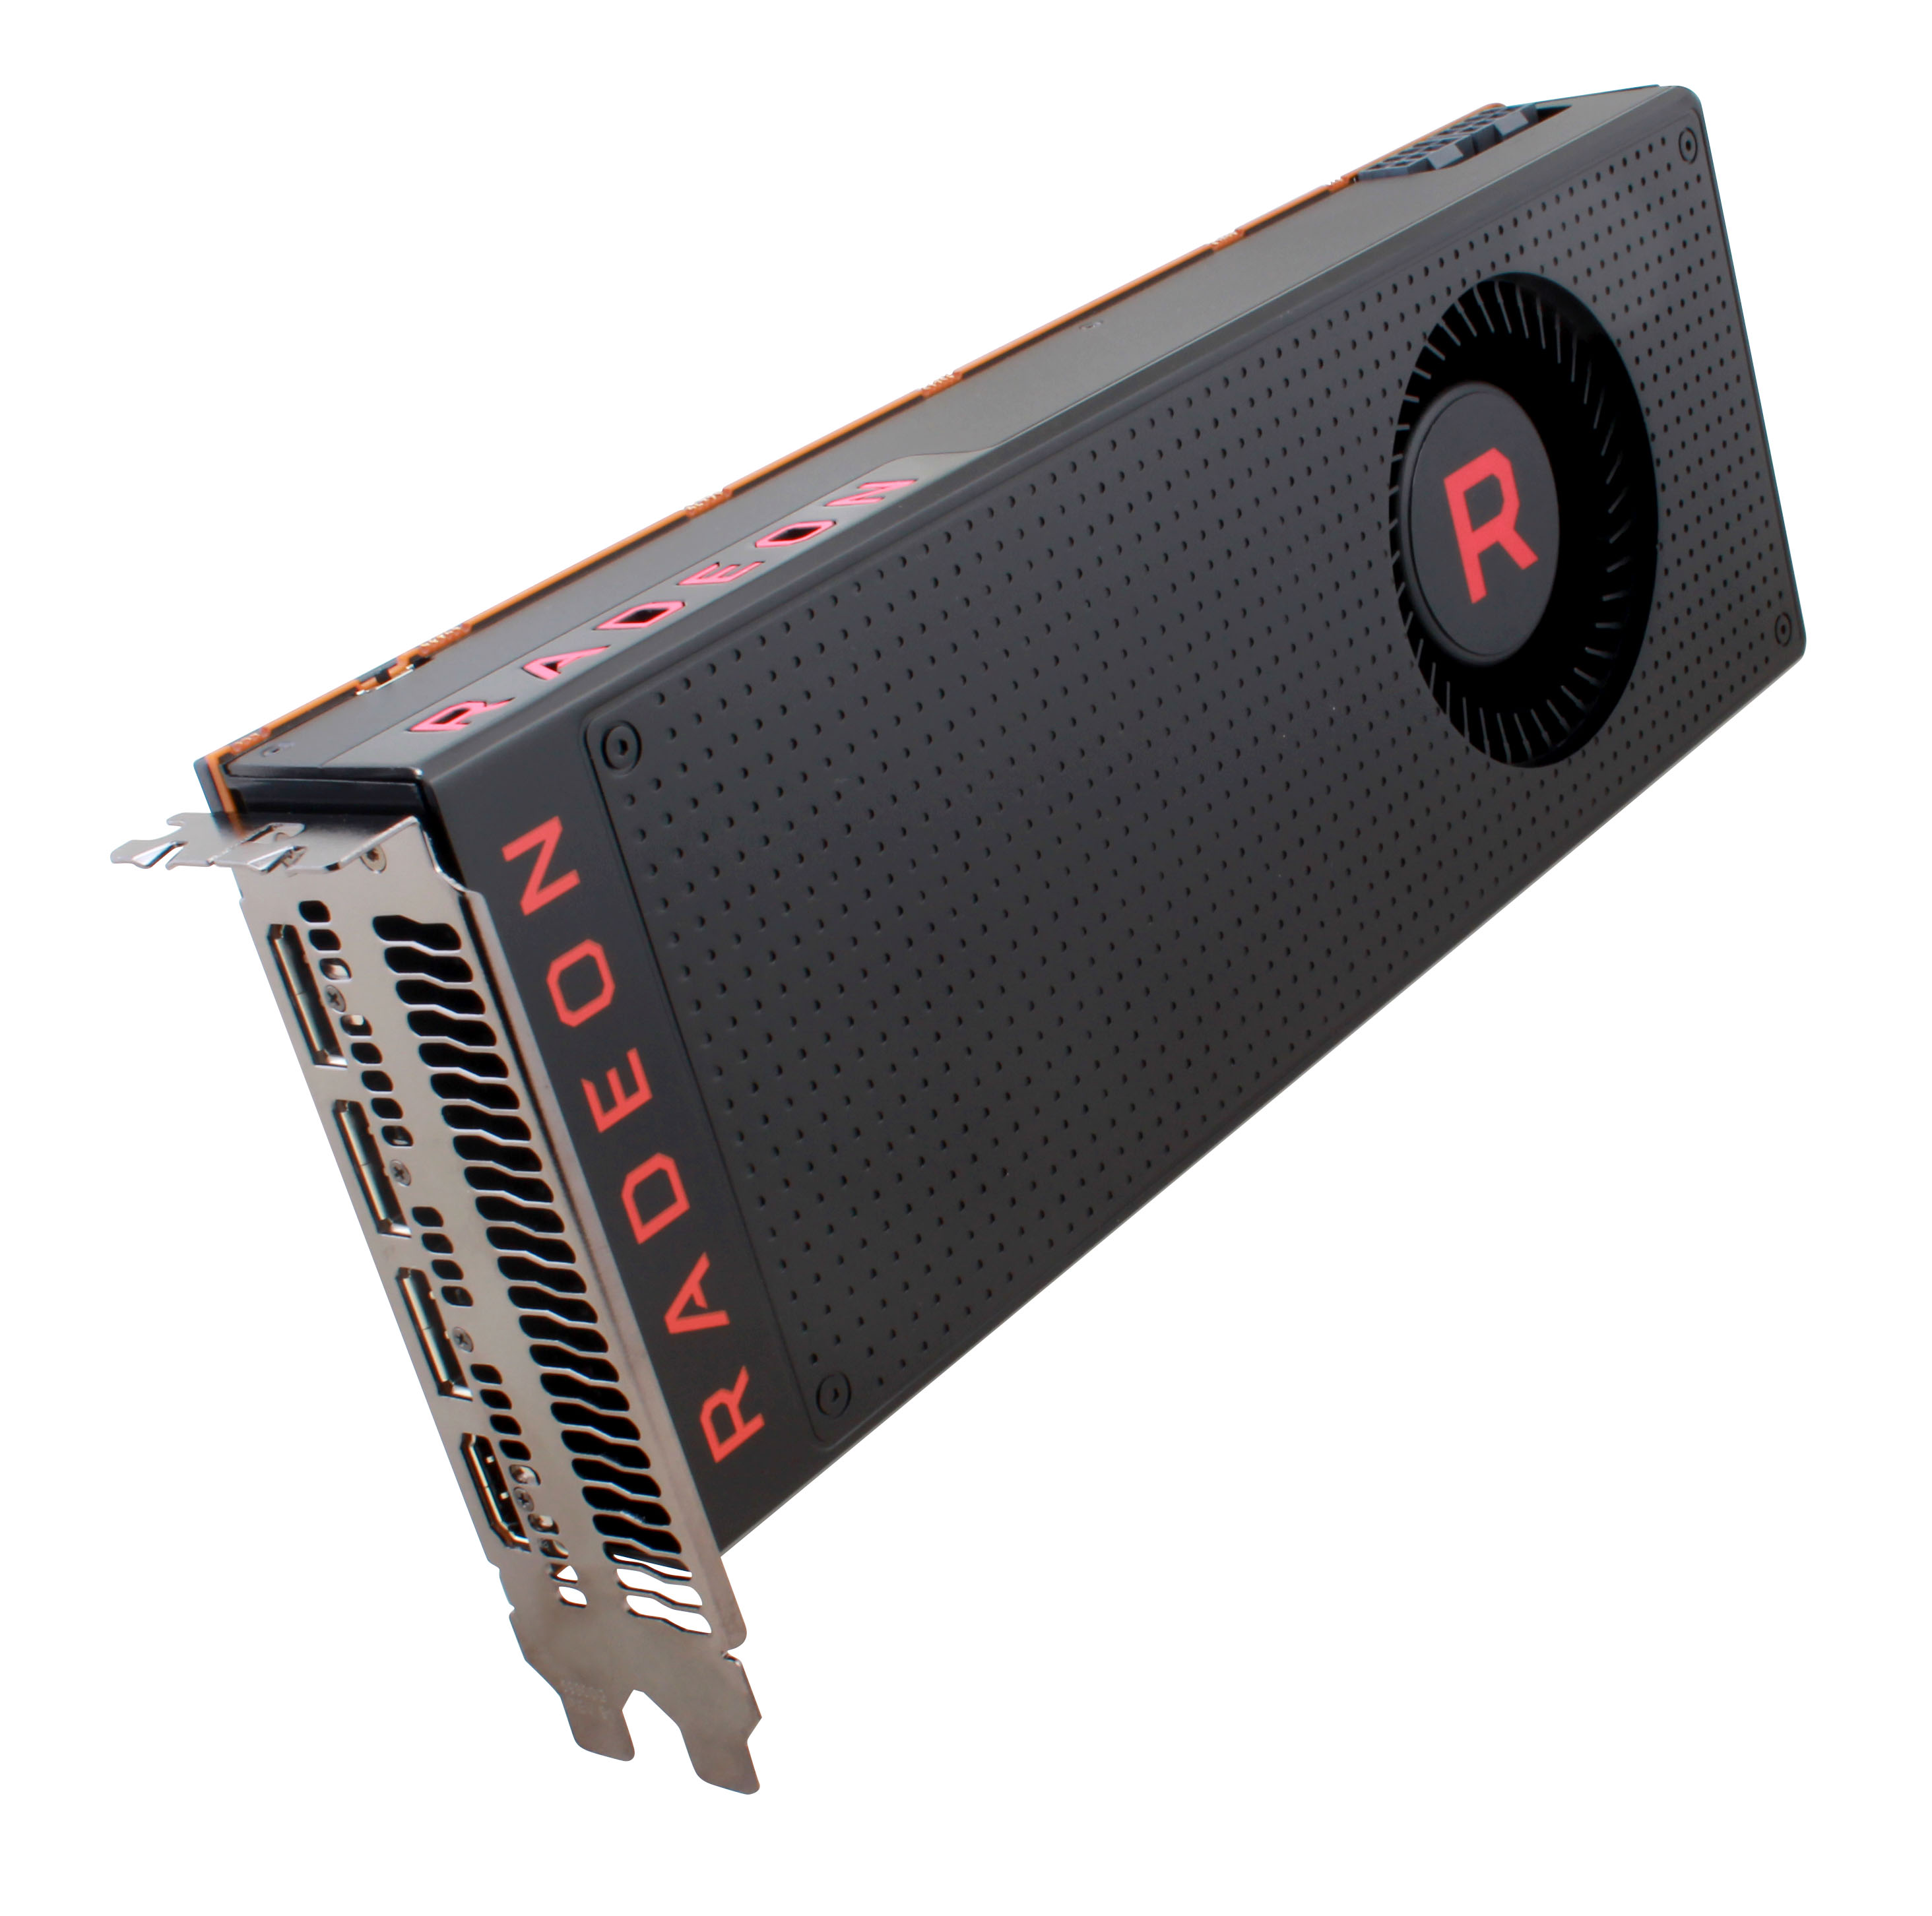 PowerColor Radeon RX VEGA 56 8GB HBM2 PCI-Express Graphics Card - Red Pack | eBay